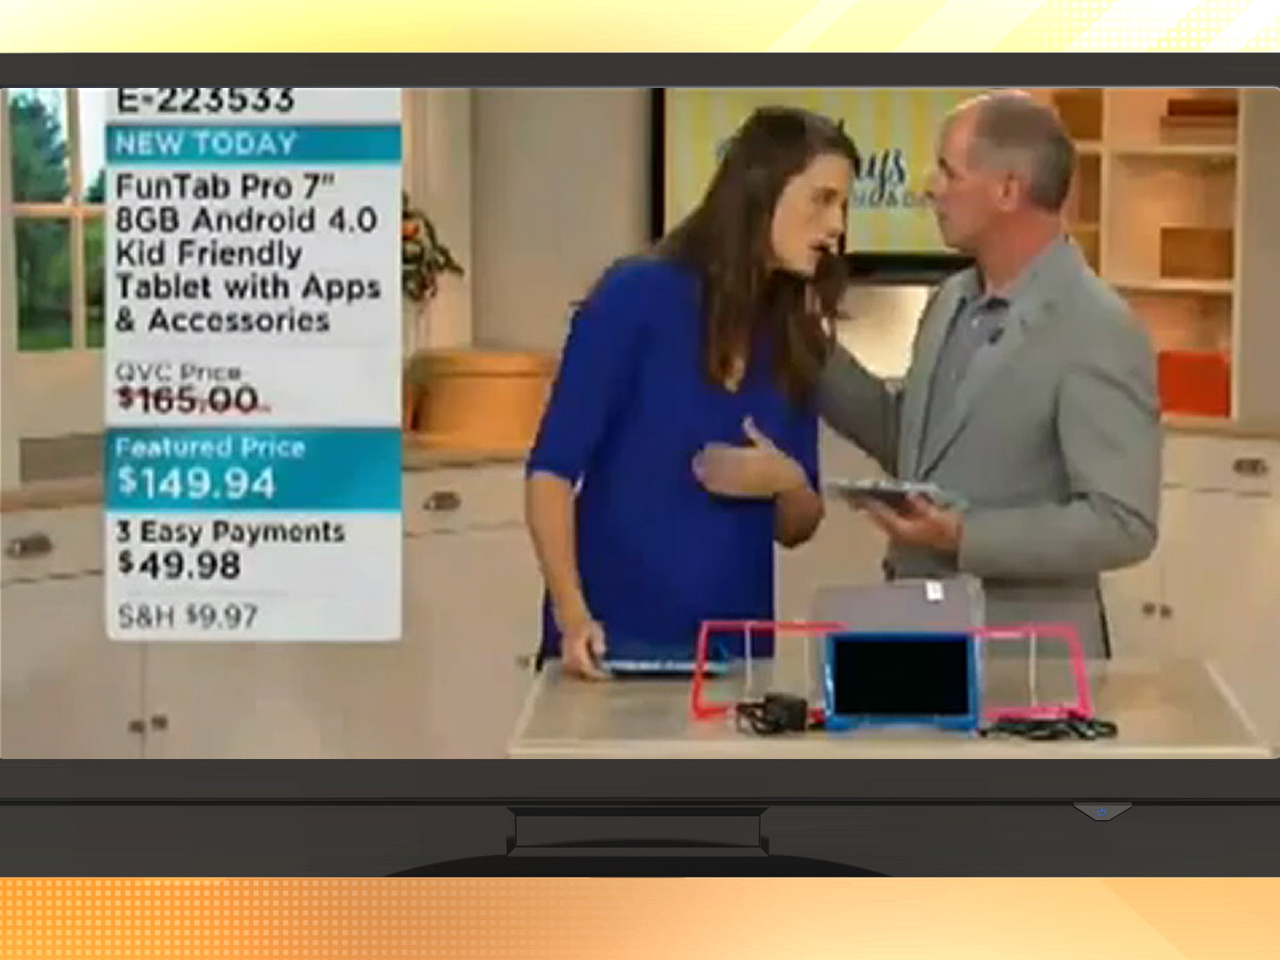 qvc host faints on air, co-host keeps on selling